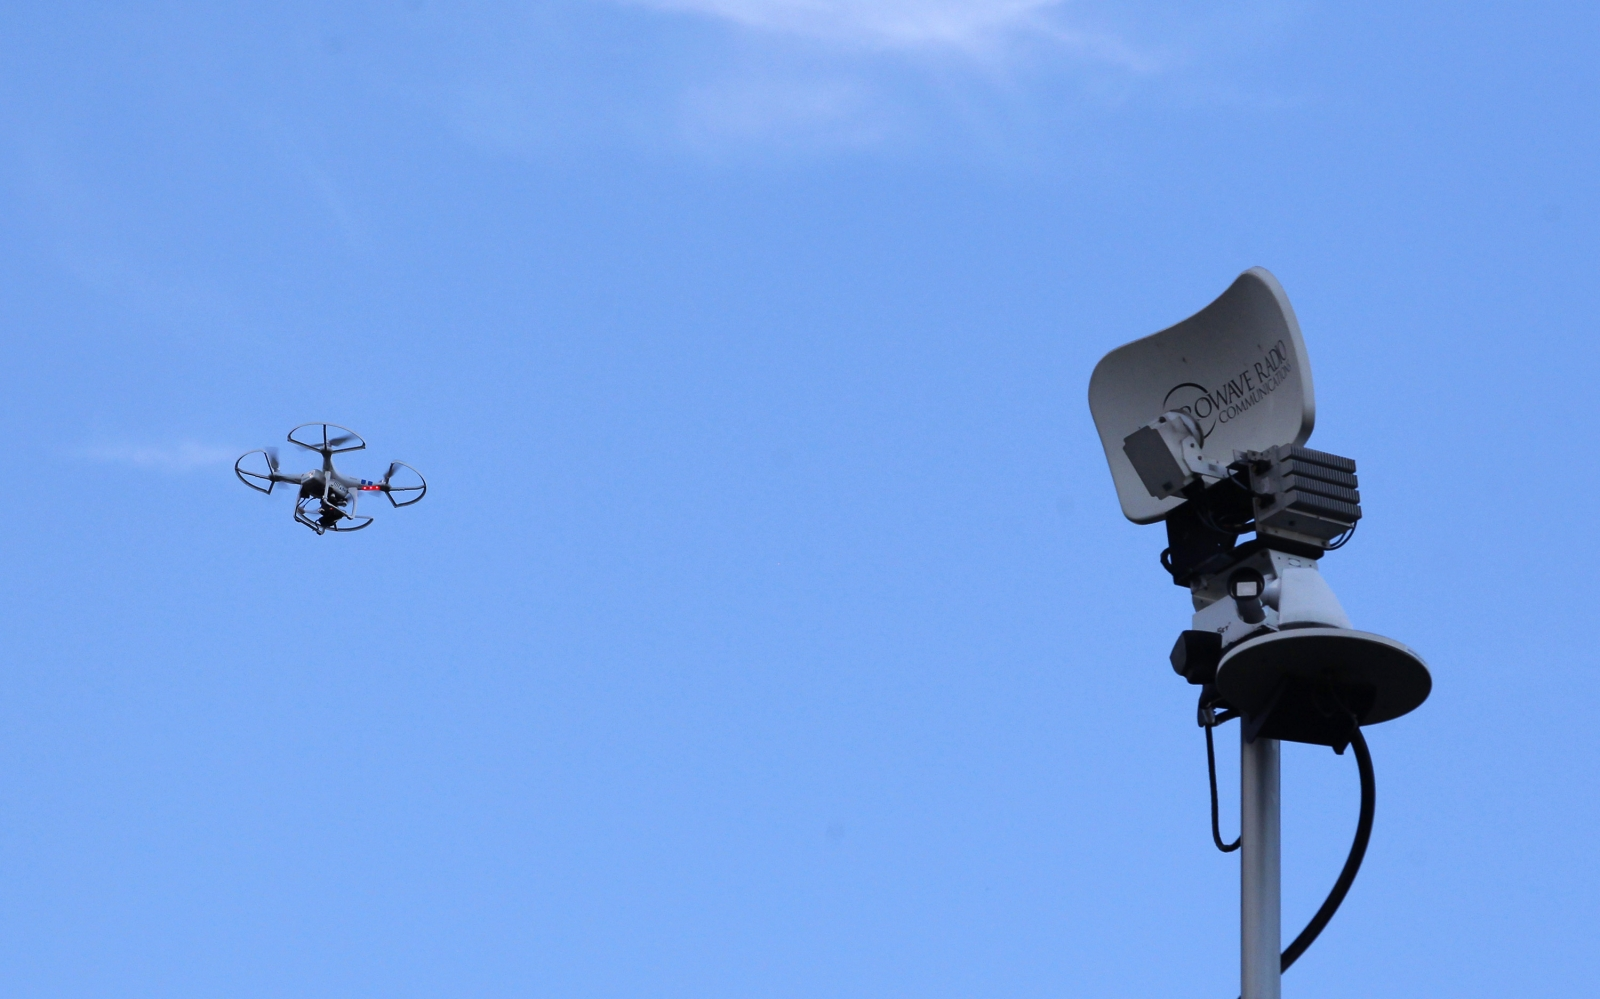 A drone flying near a TV antenna